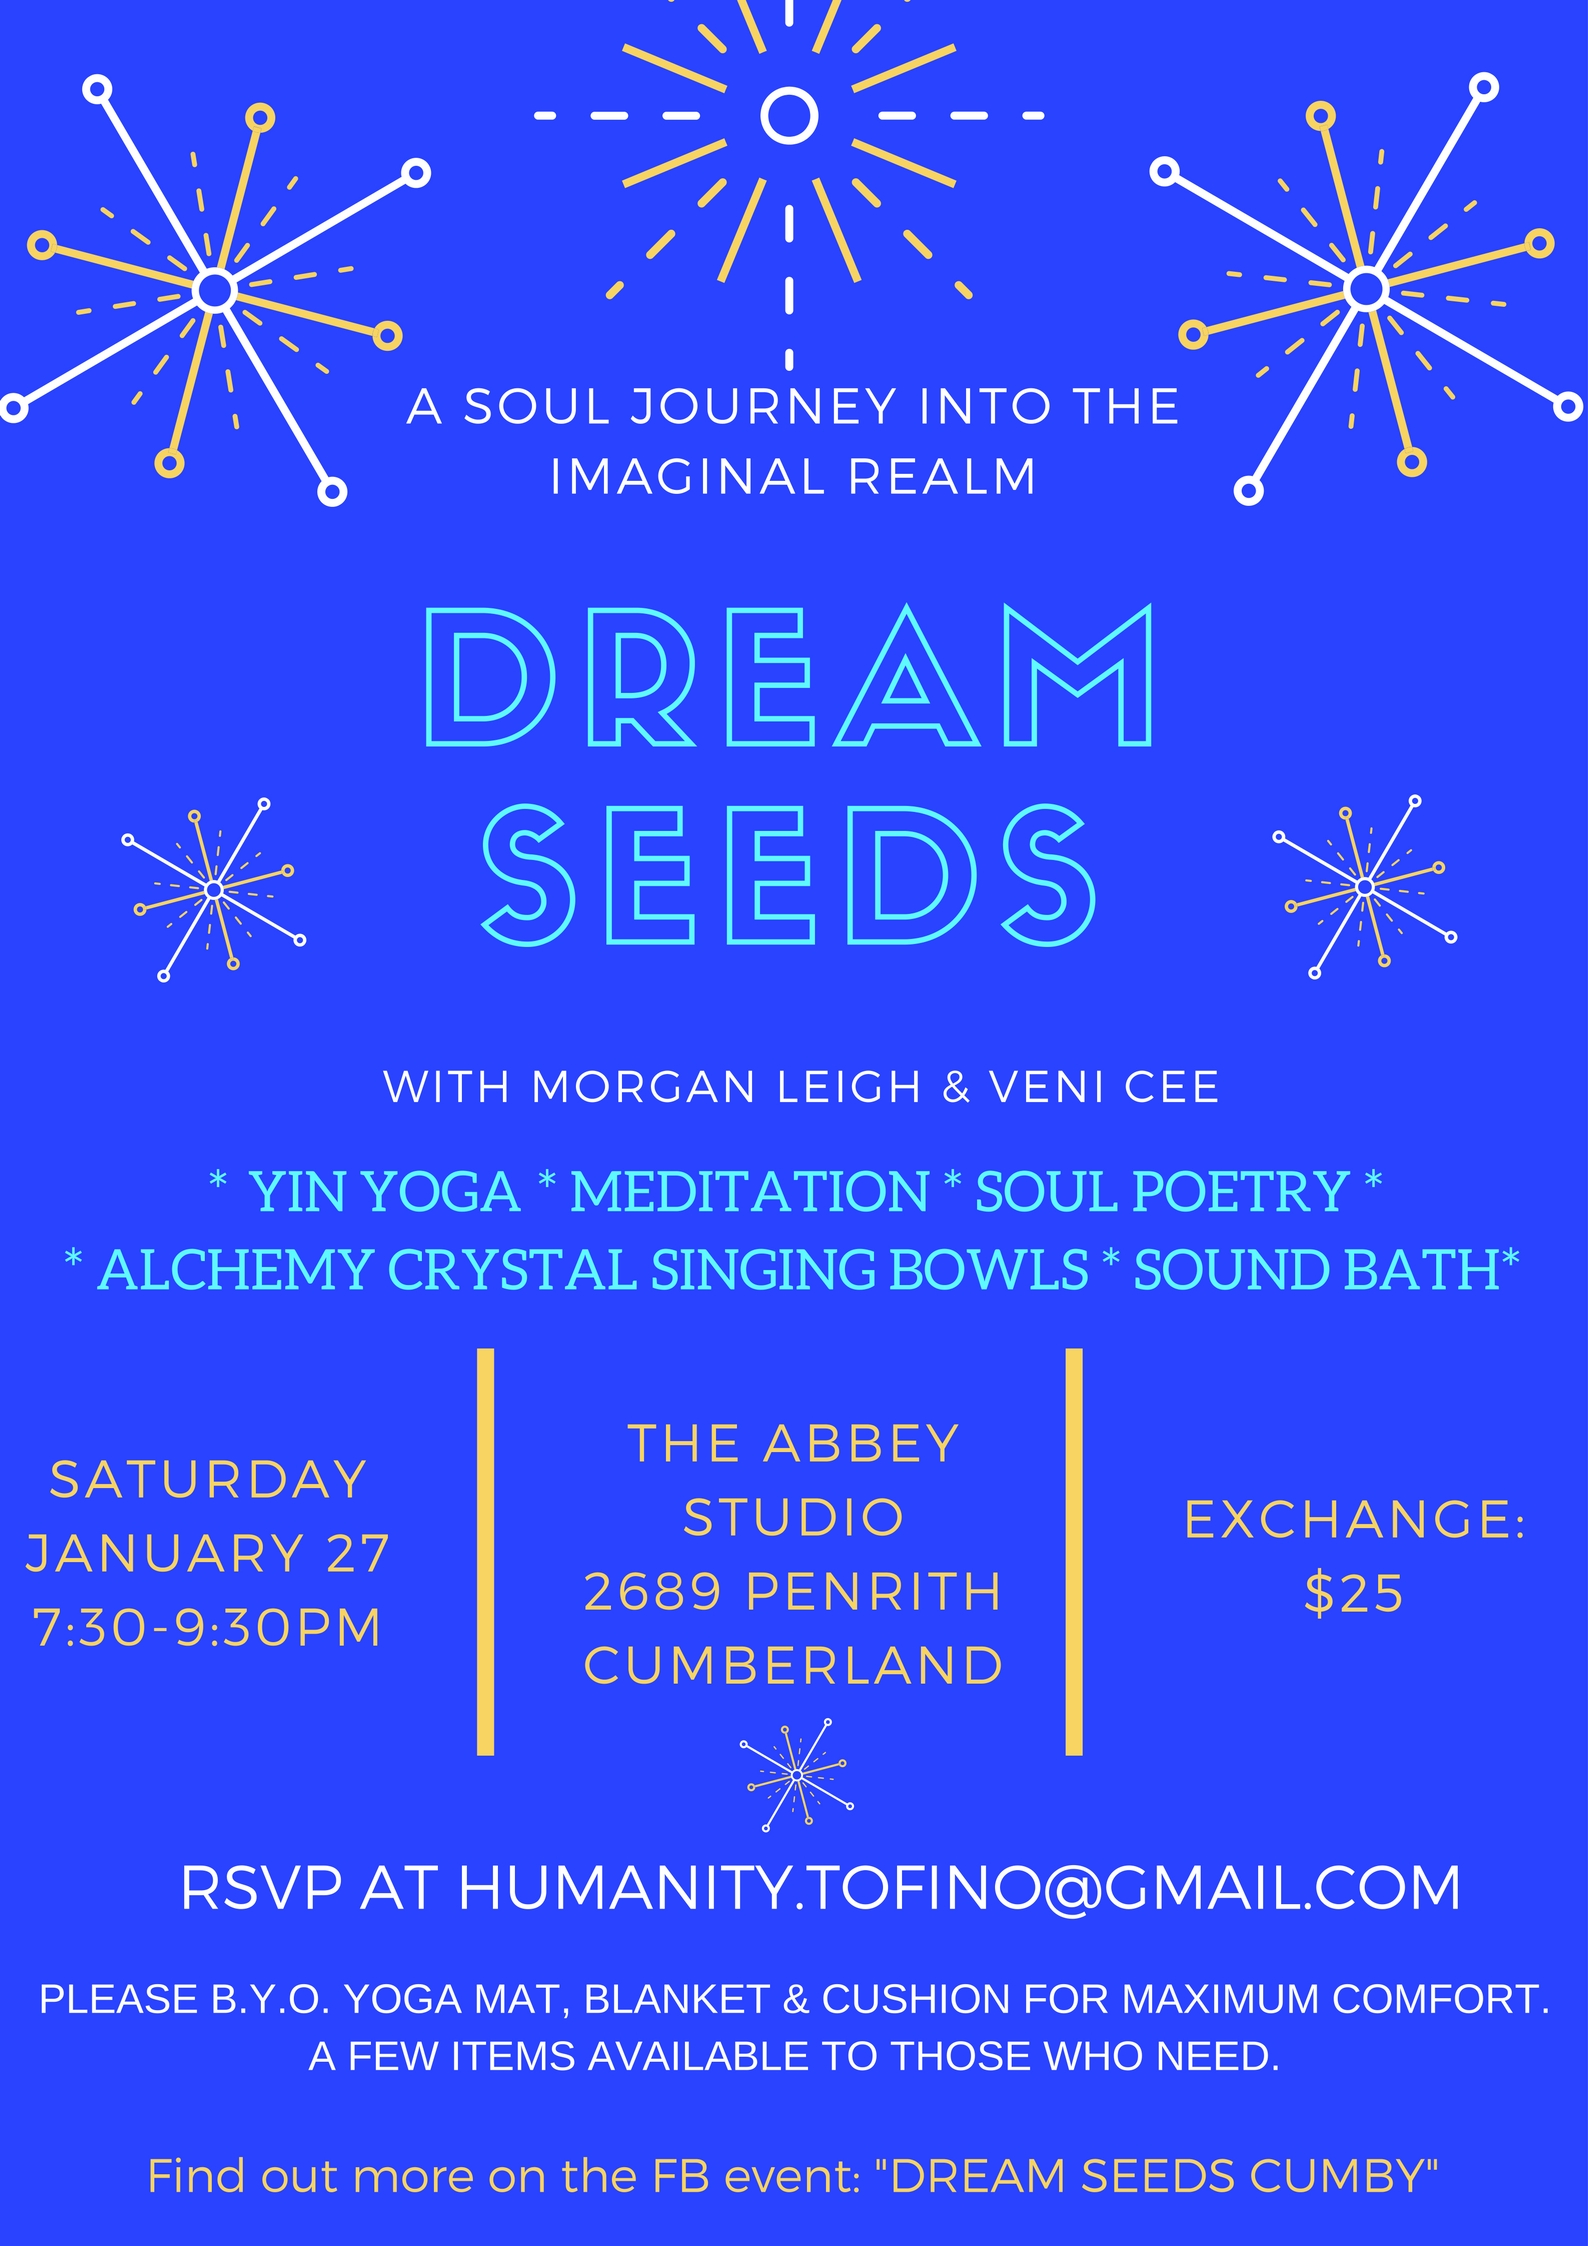 DREAM SEEDS CUMBY